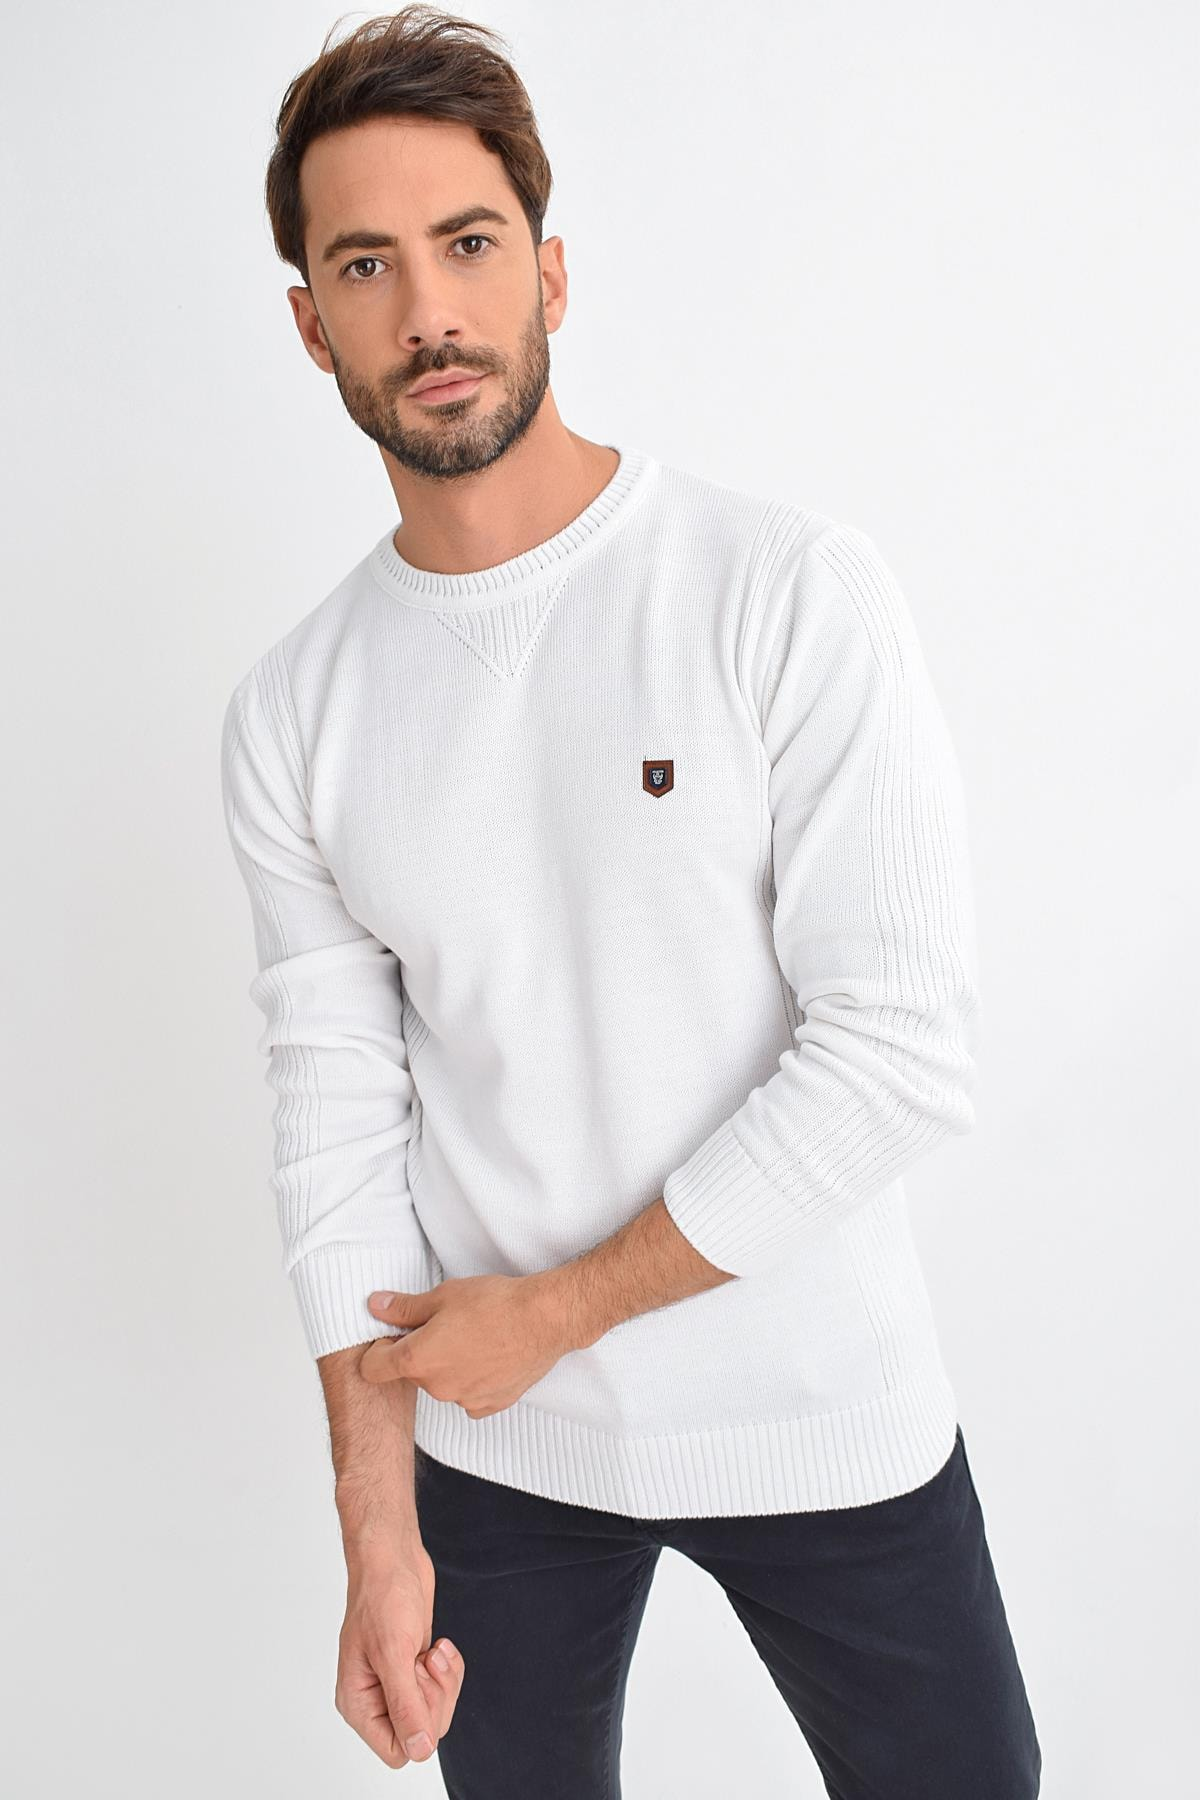 Men's White Crew Neck Basic Sweater Pullover 9KETRWE5000 9KETRWE5000_010